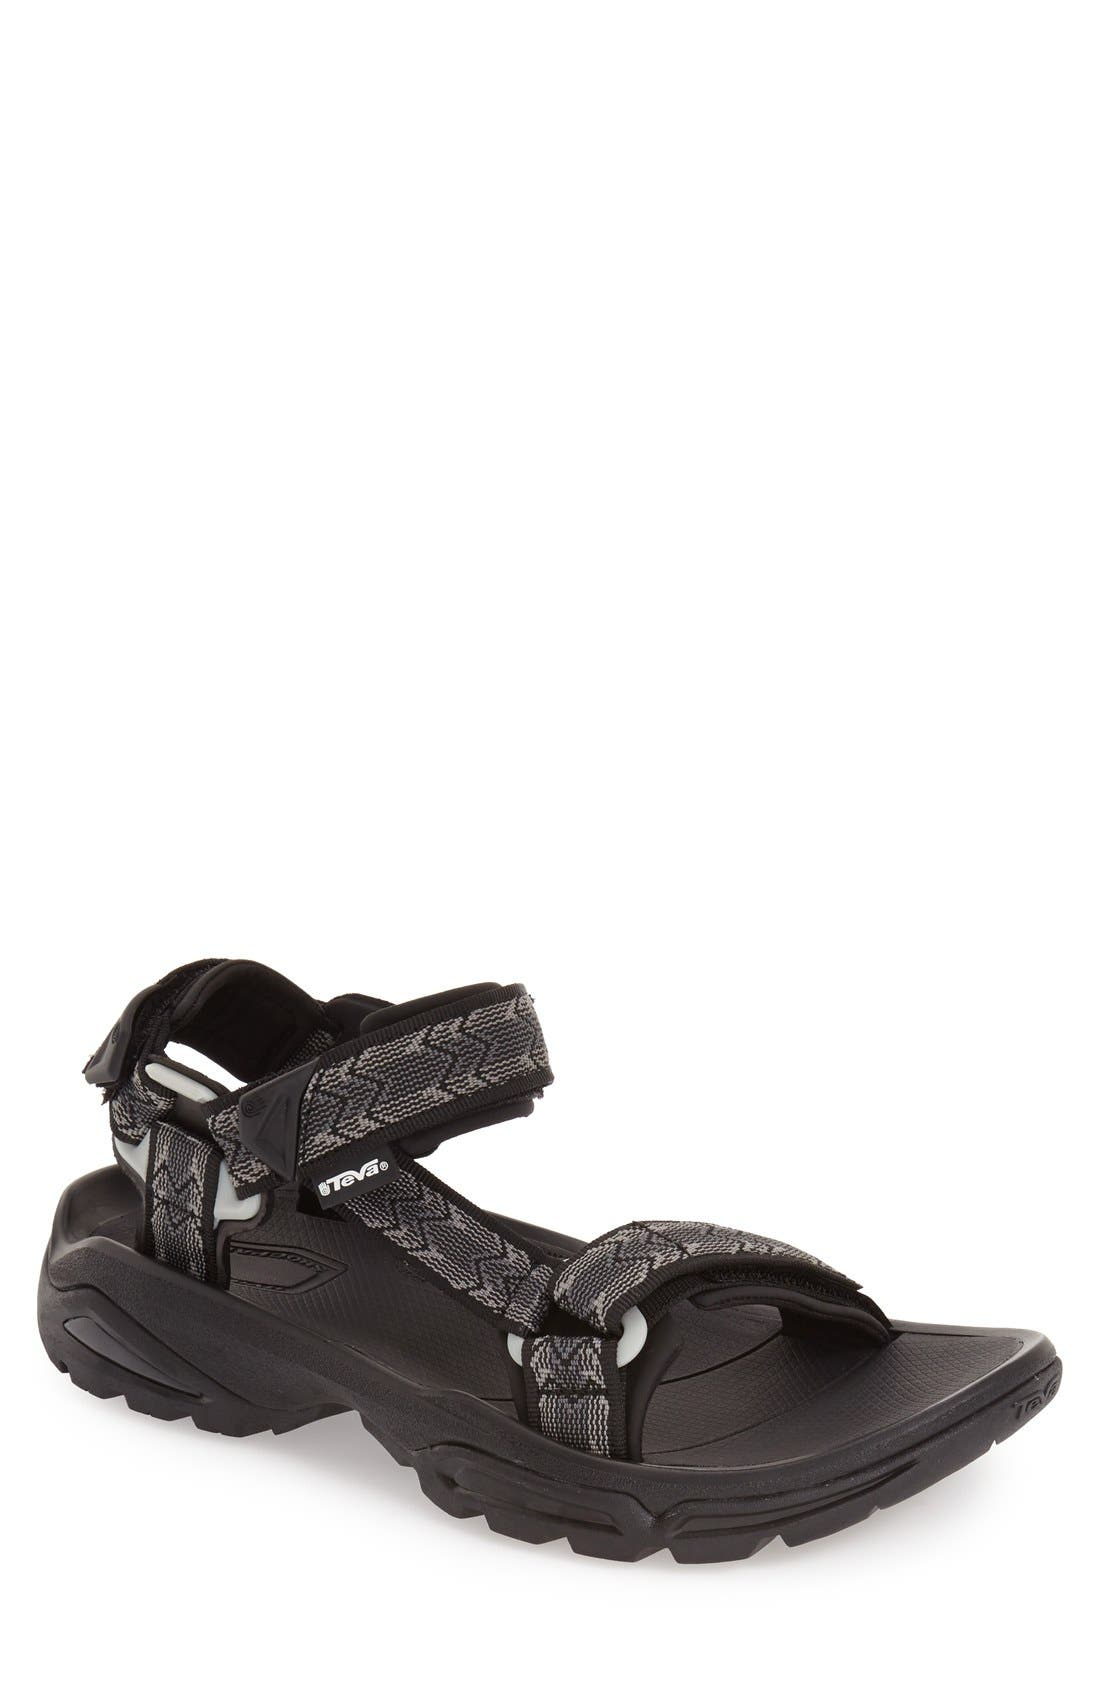 'Terra Fi 4' Sandal,                         Main,                         color, CROSS TERRA BLACK